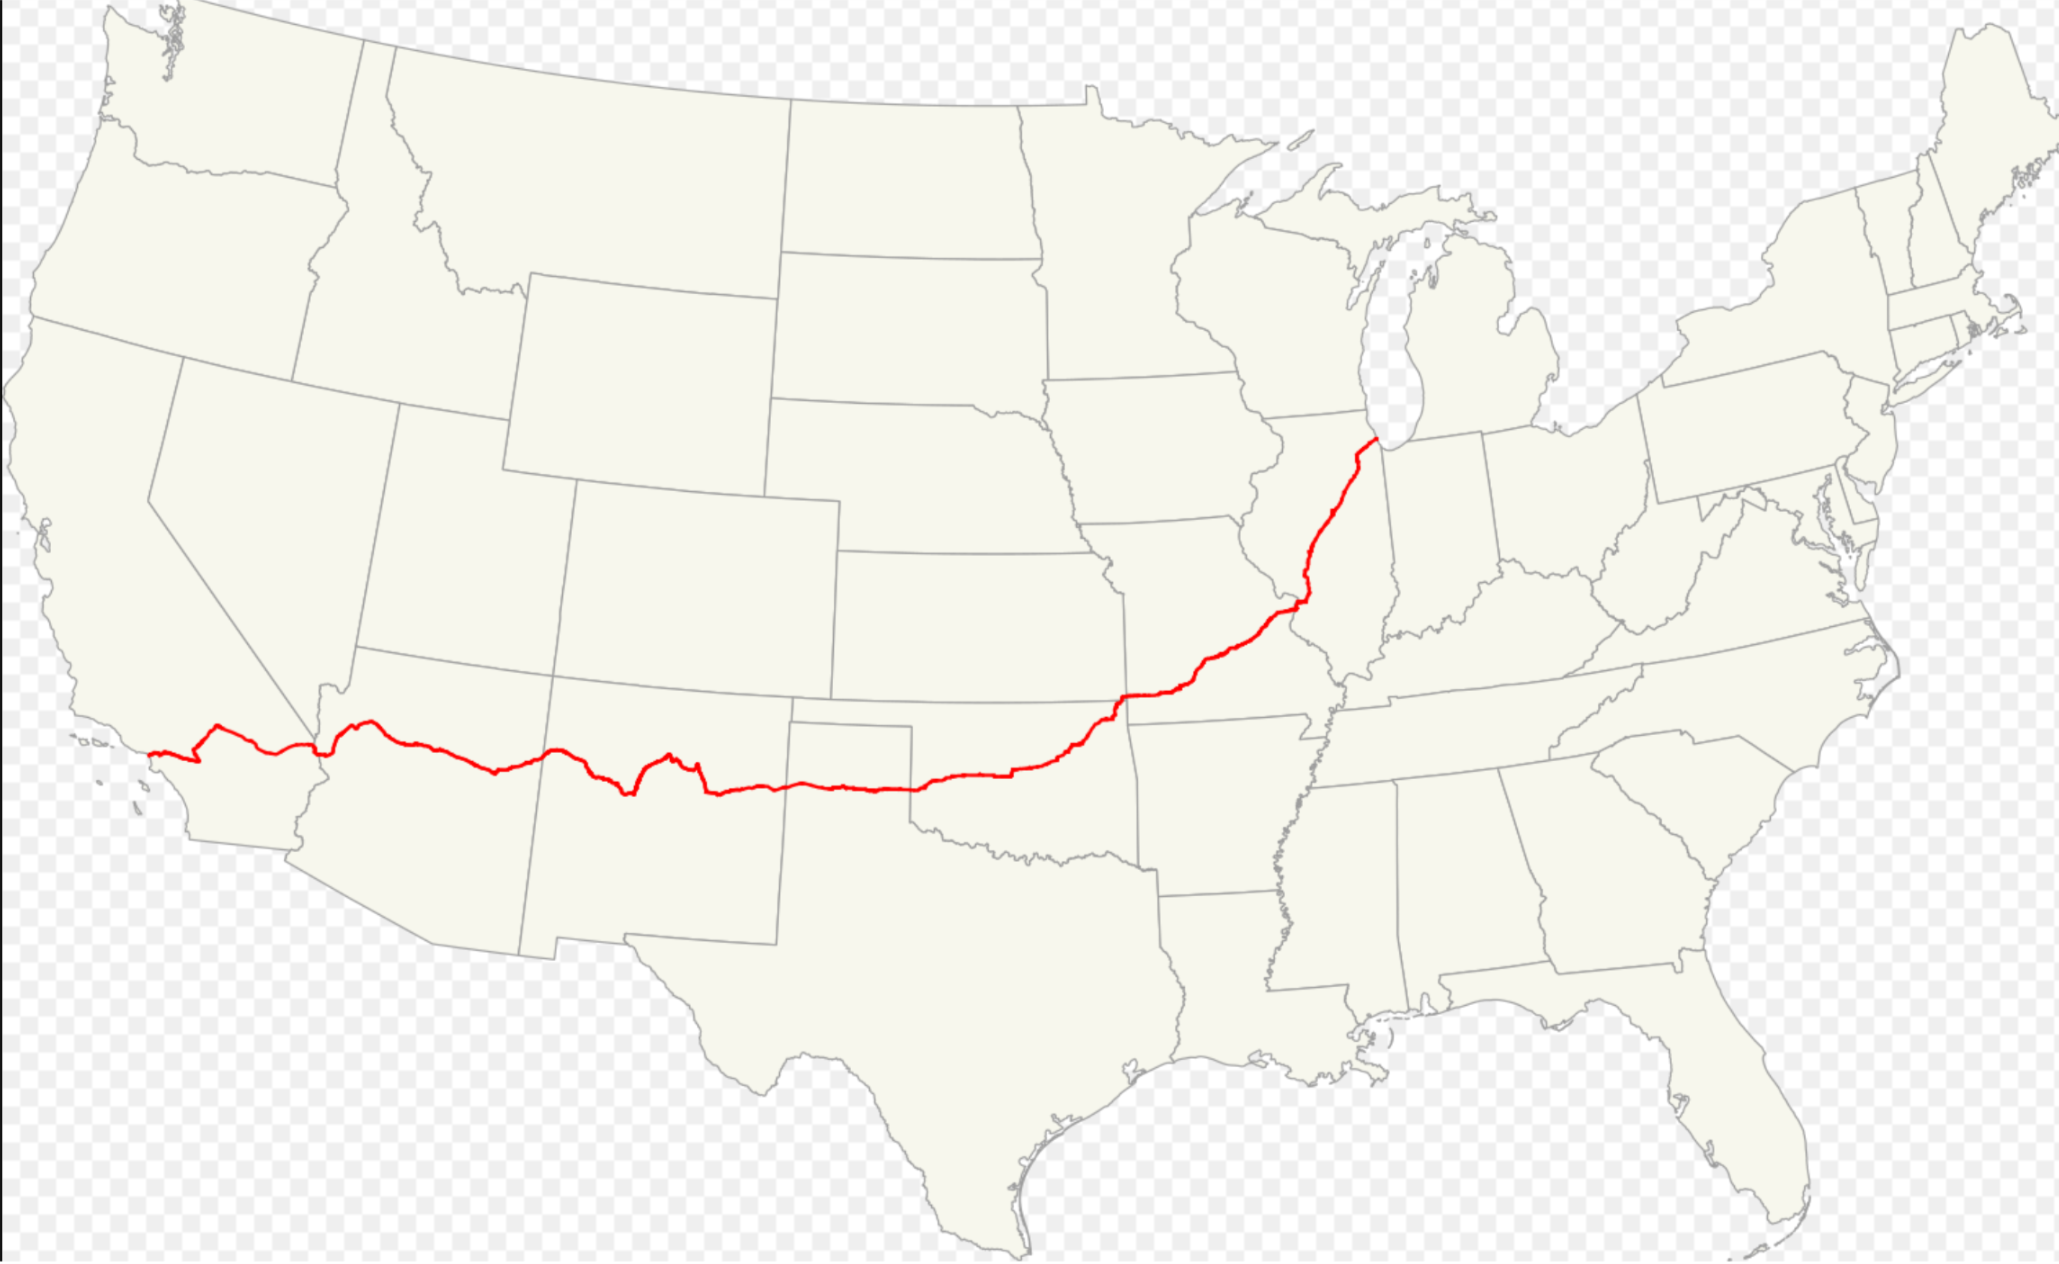 The route 66; America's highway. And I don't mean Lewis and Clark.